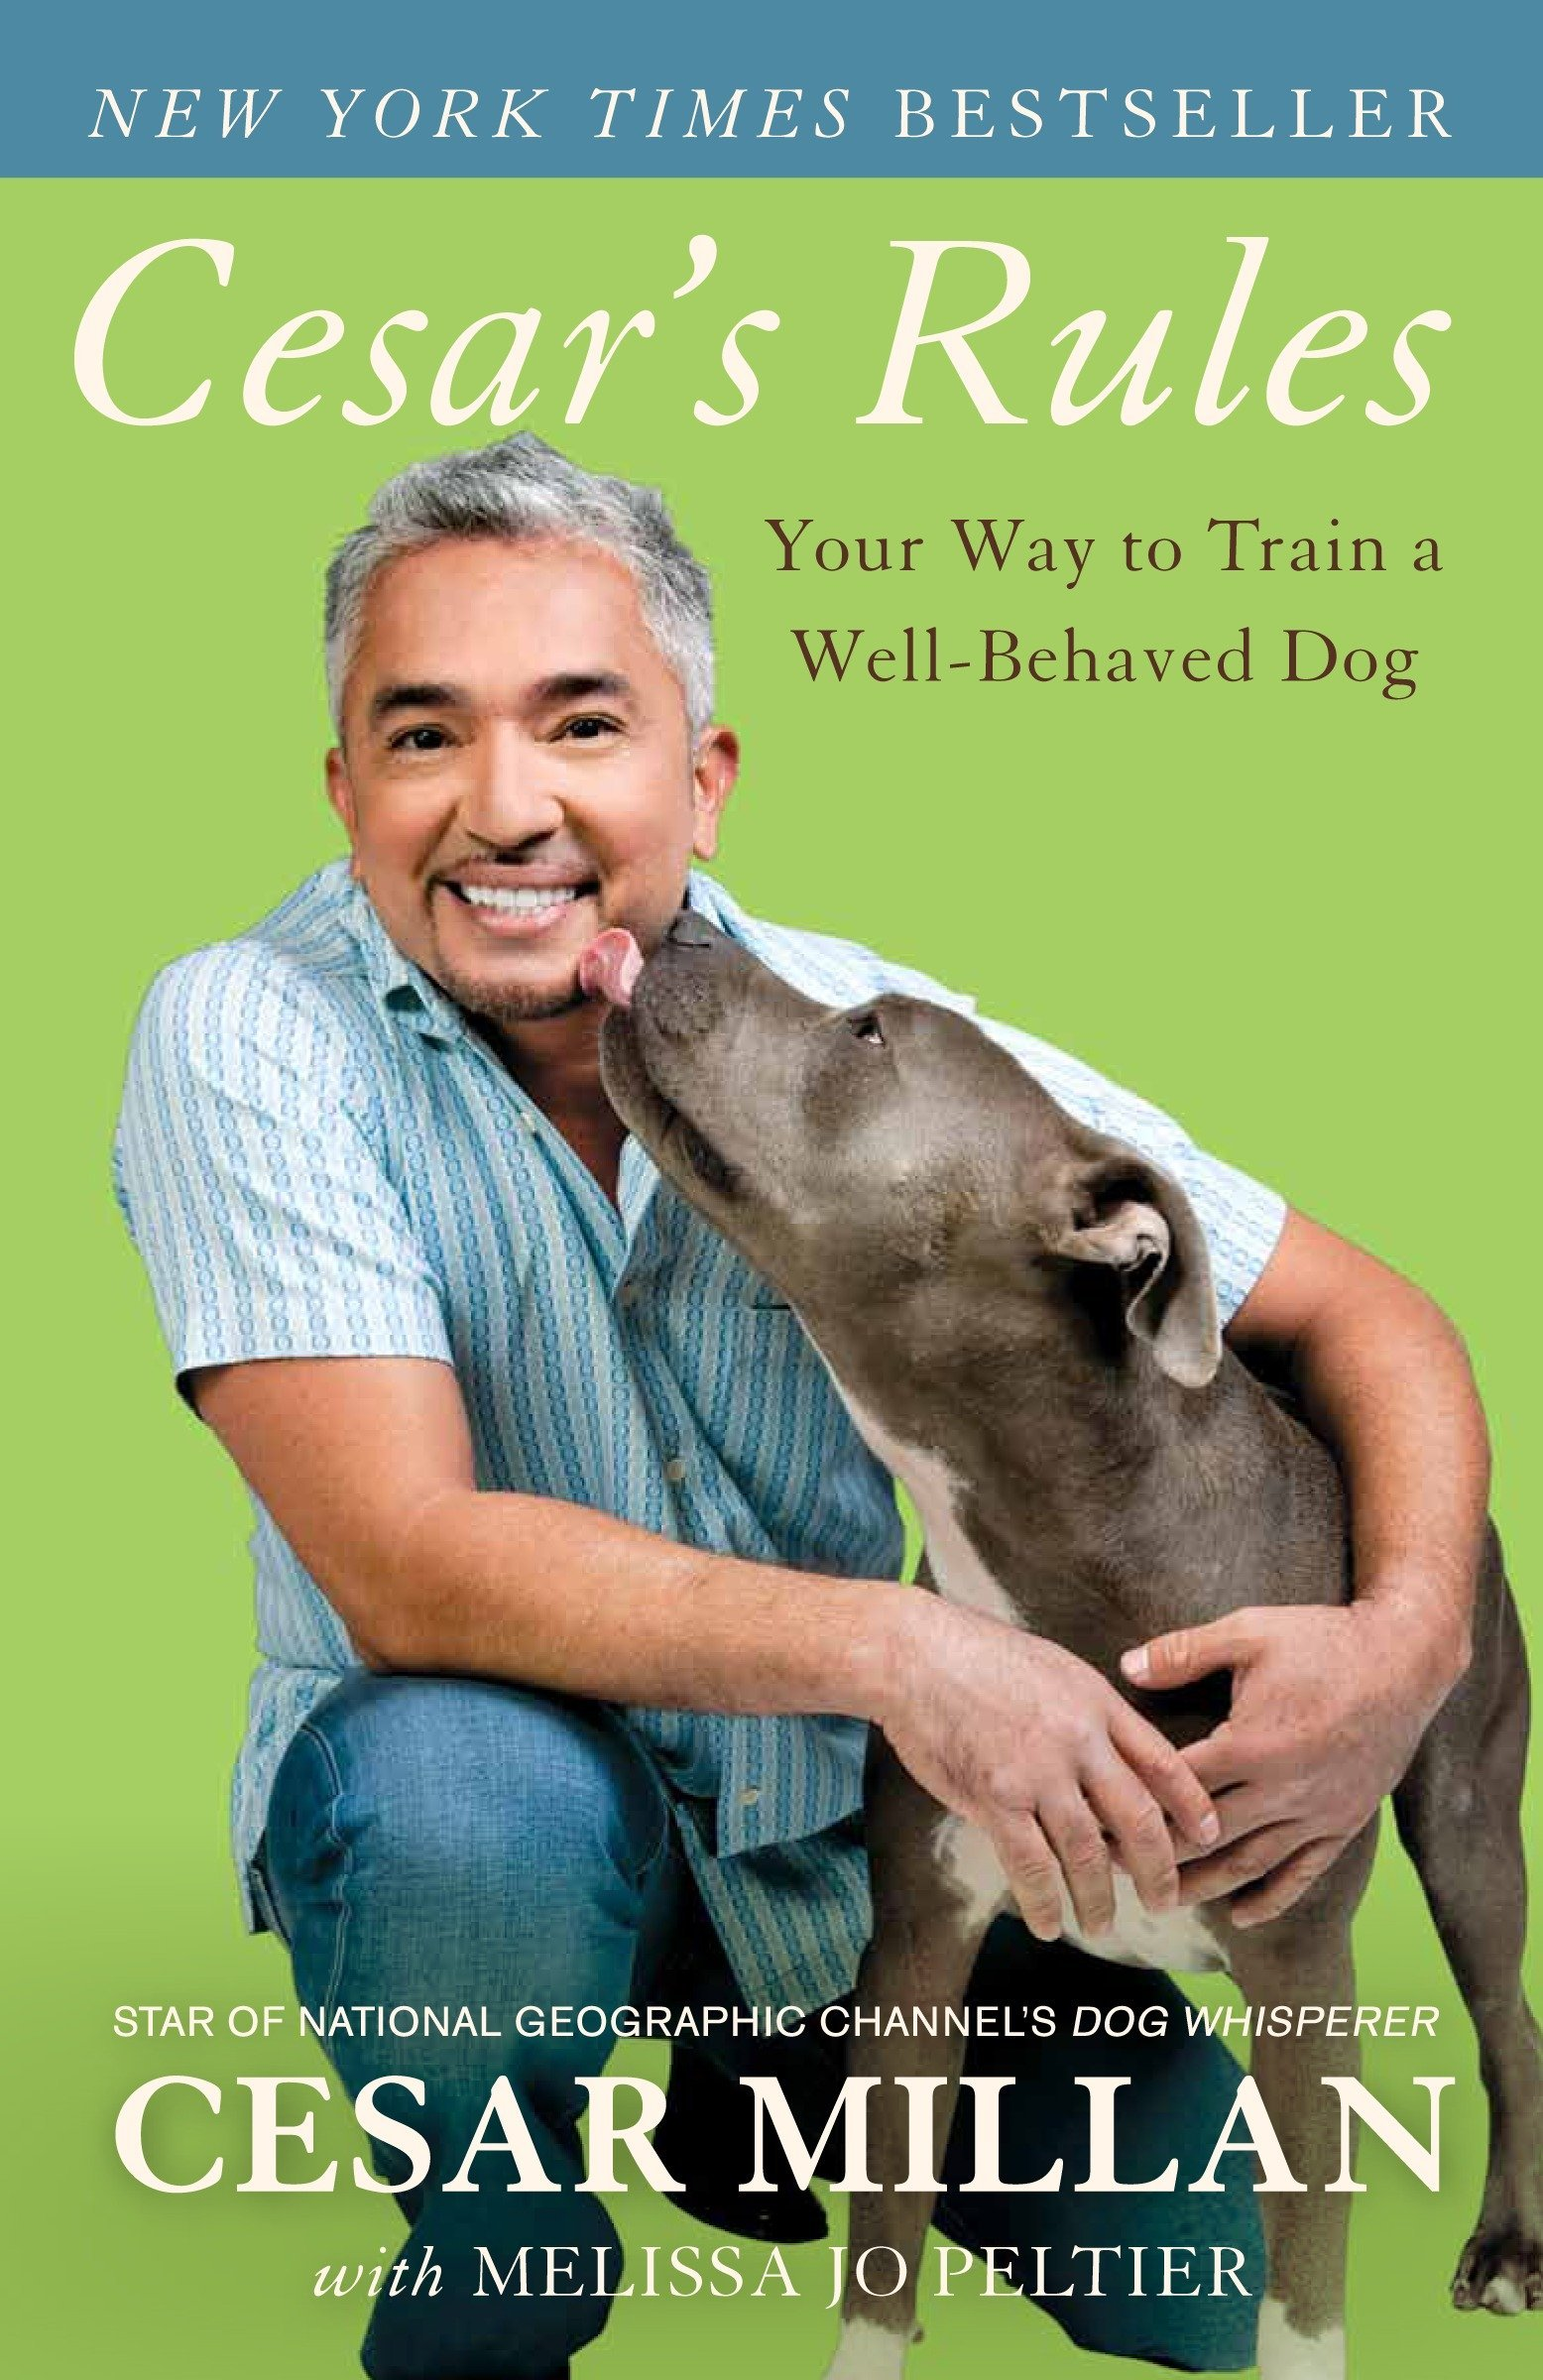 Cesar's Rules: Your Way to Train a Well-Behaved Dog by Three Rivers Press